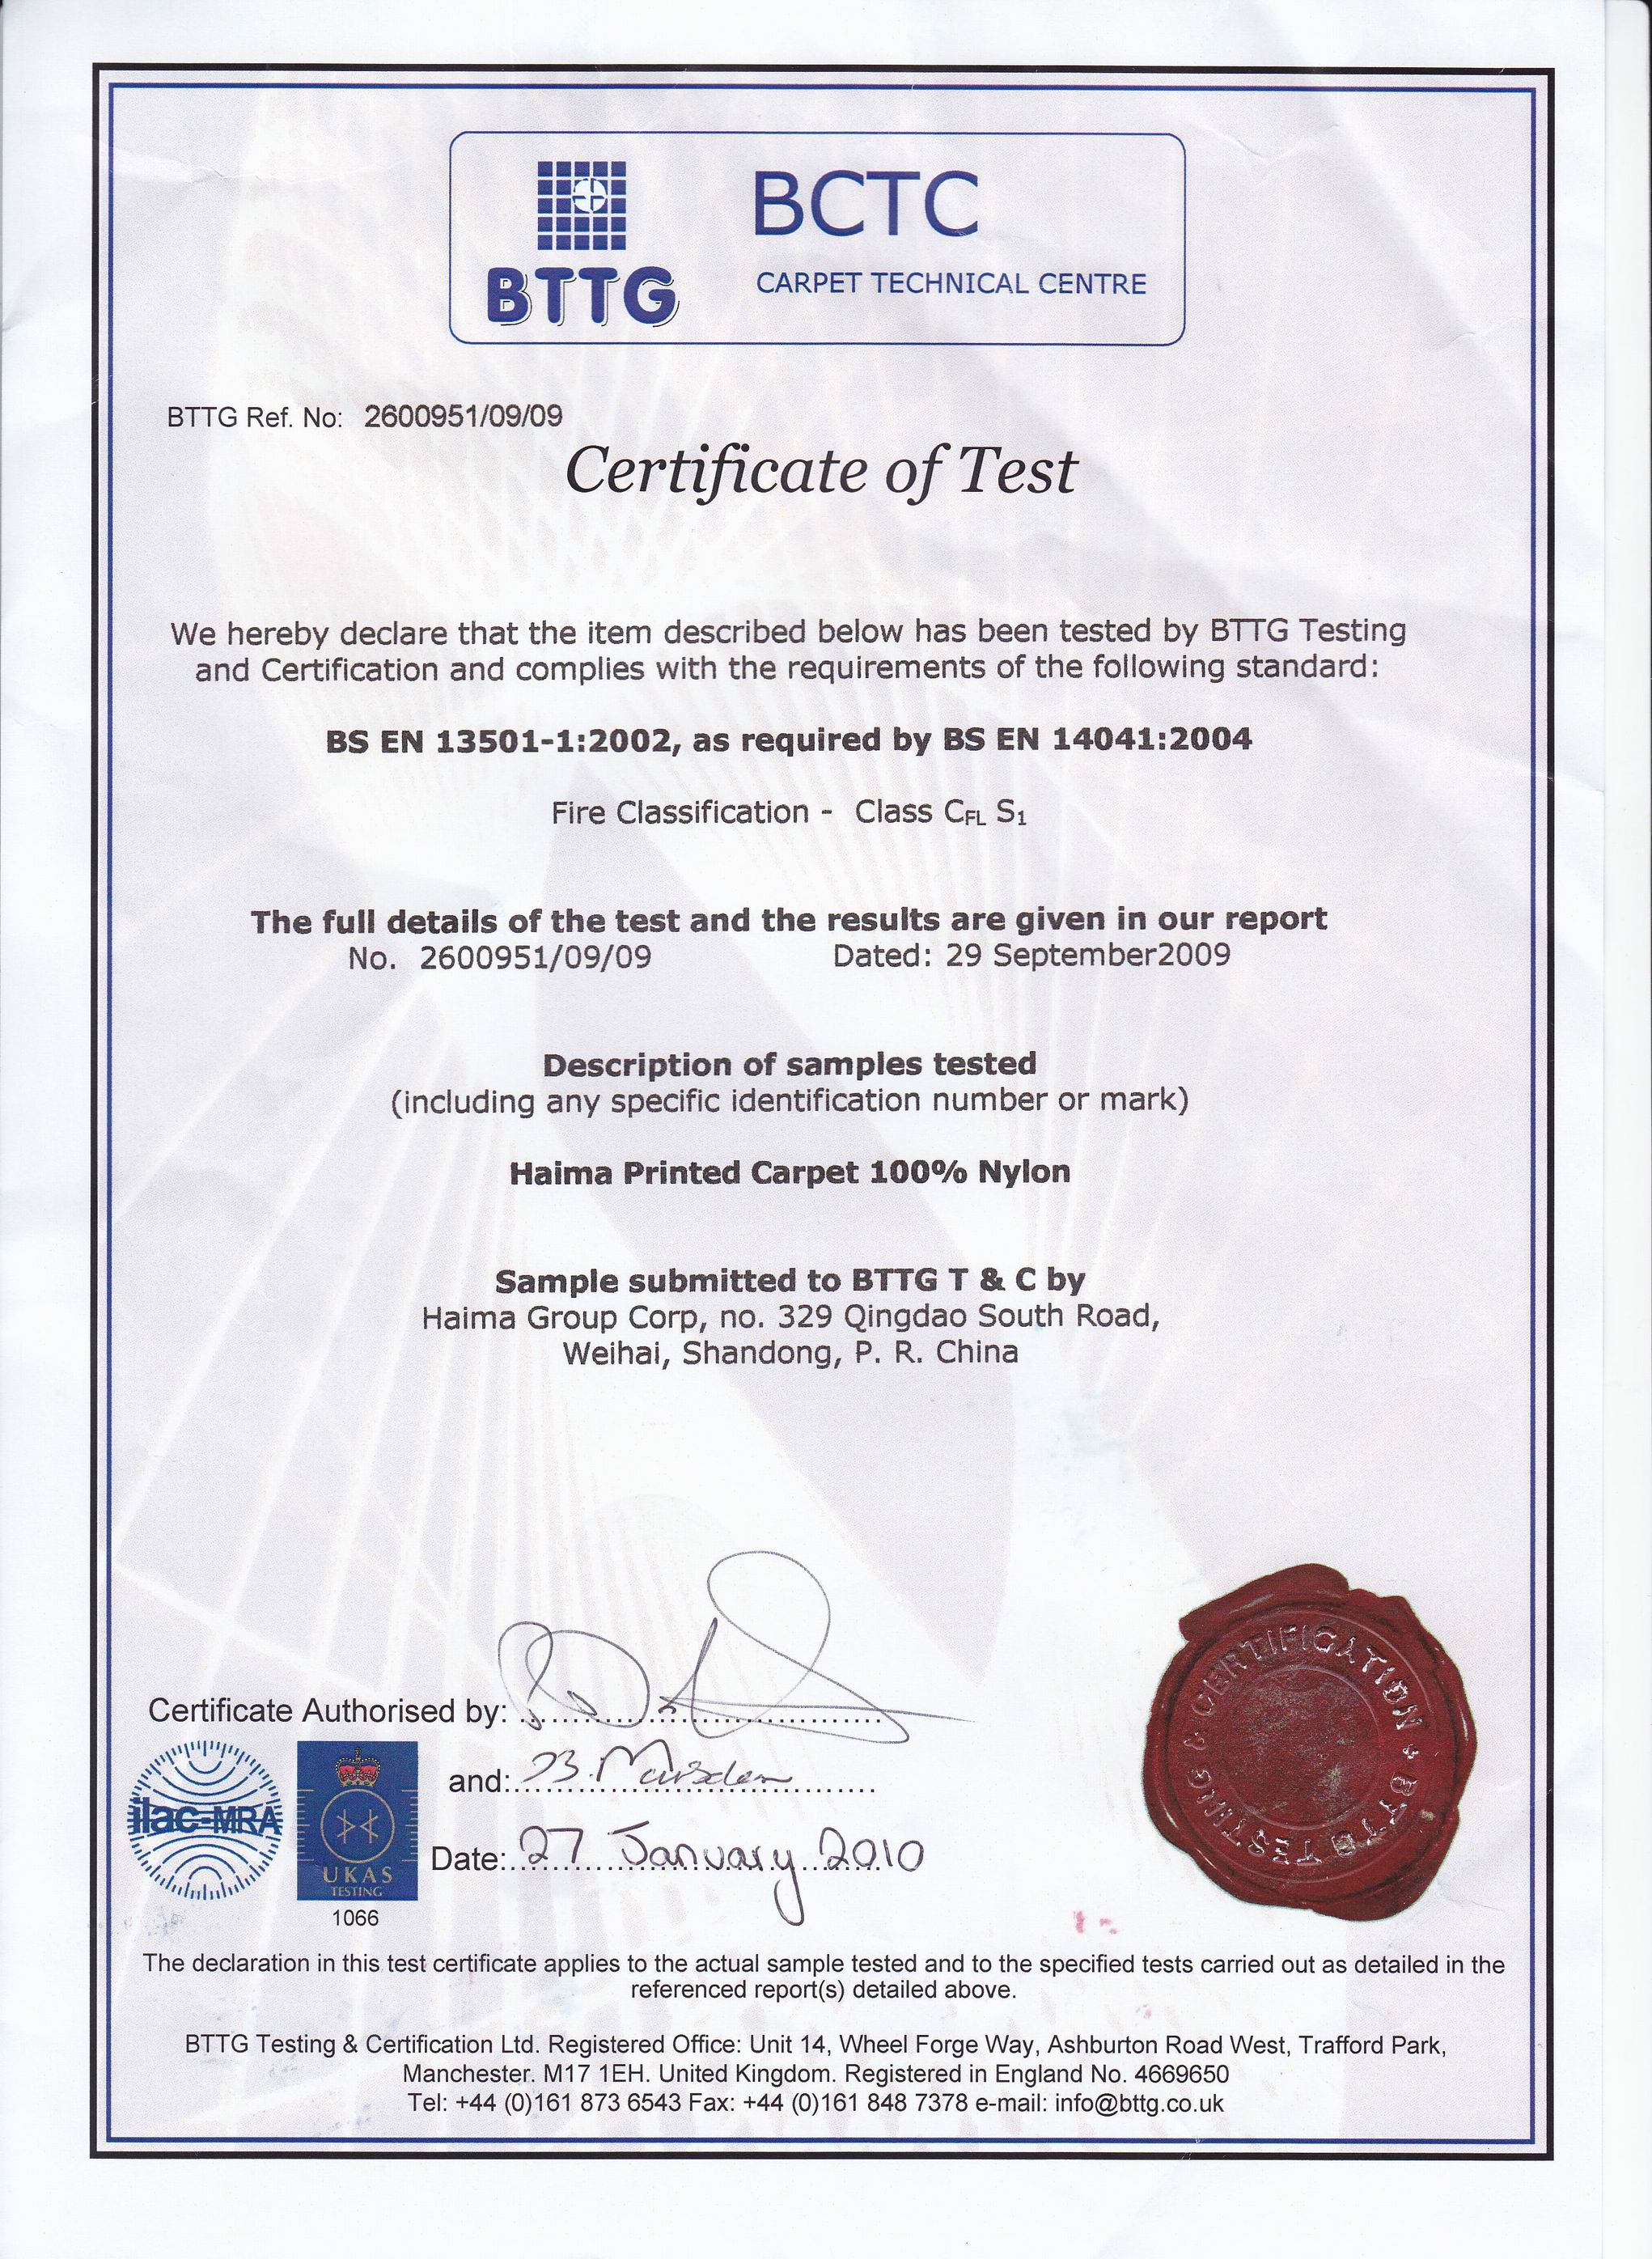 Welcome to haima website 50 ce certificate for nylon printed carpets 1betcityfo Gallery